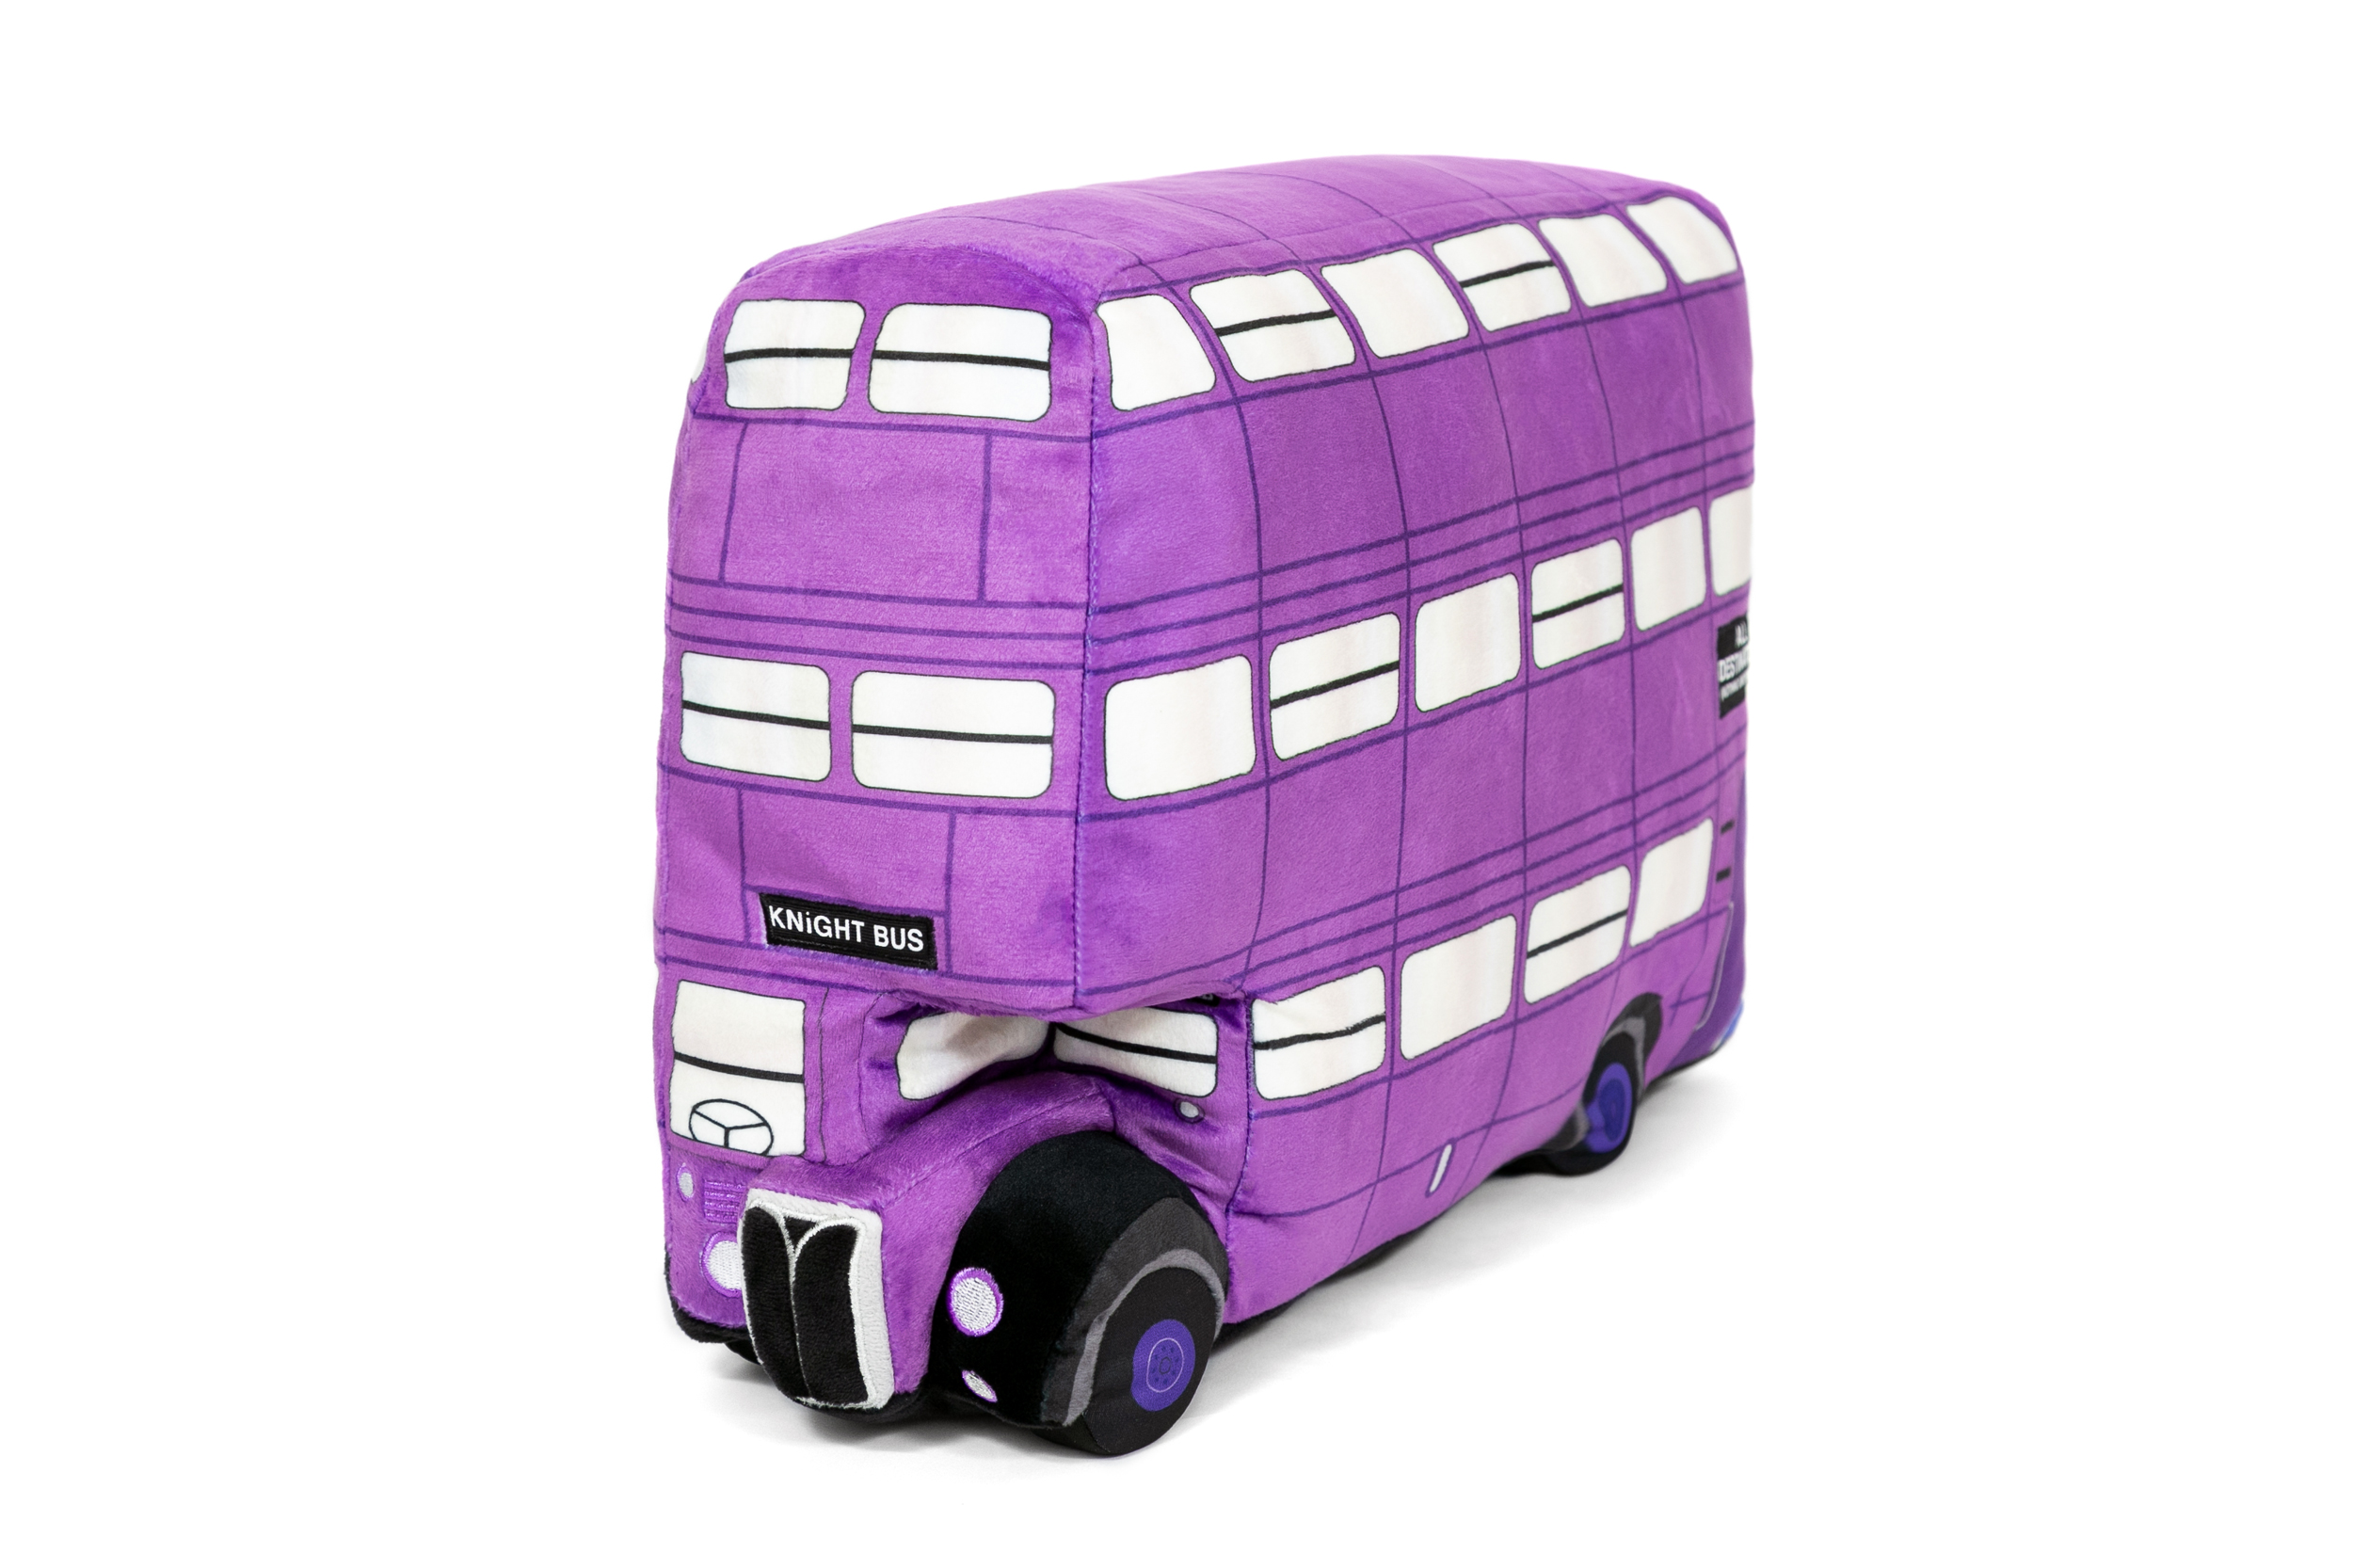 This plush toy is bound to be much more comfortable than a ride on the bumpy Knight Bus.